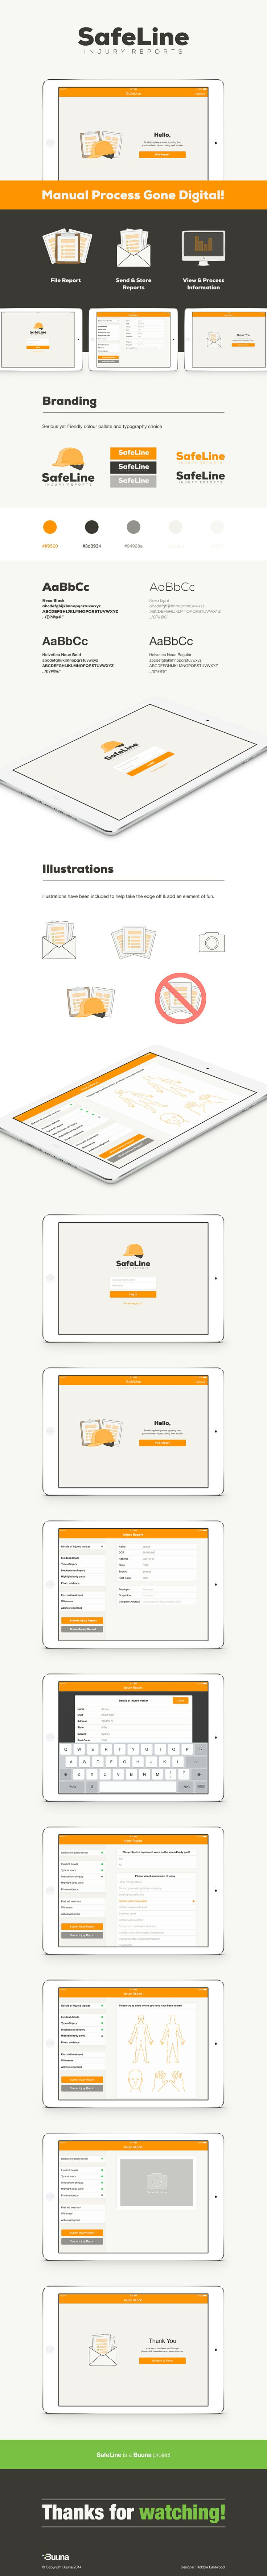 SafeLine - Injury Reporting application to replace a slow manual process. #appdesign #graphicdesign #UX #UI #ios #uxdesign #uidesign #app